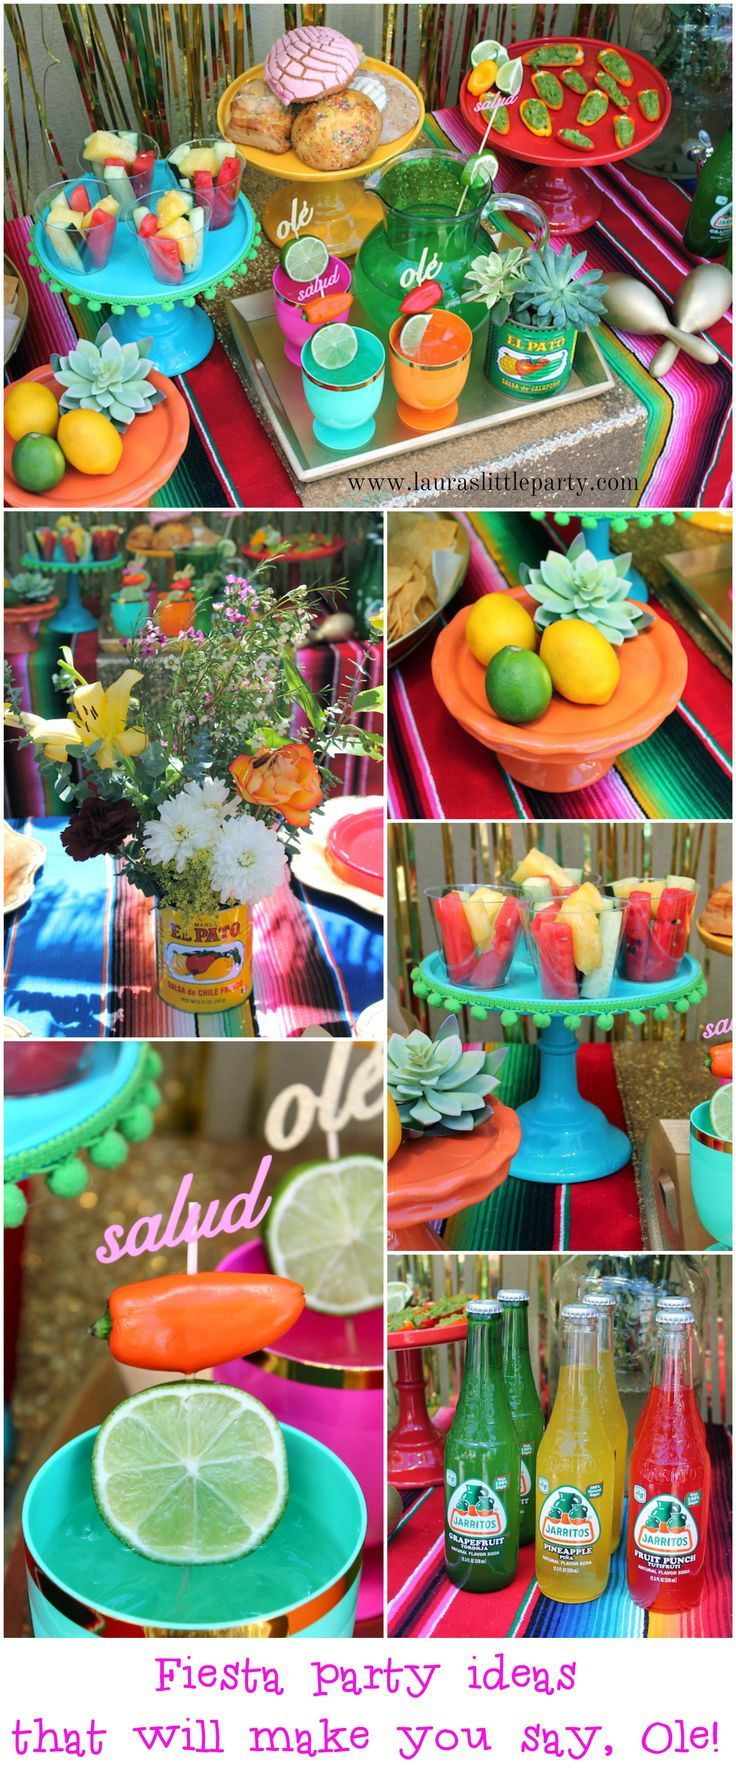 See all the festive party ideas from LAURA'S little PARTY! Bold party decor + simple recipe ideas for your next fiesta, or cinco de mayo celebration! http://www.lauraslittleparty.com/2016/04/fiesta-party-ideas-for-cinco-de-mayo.html